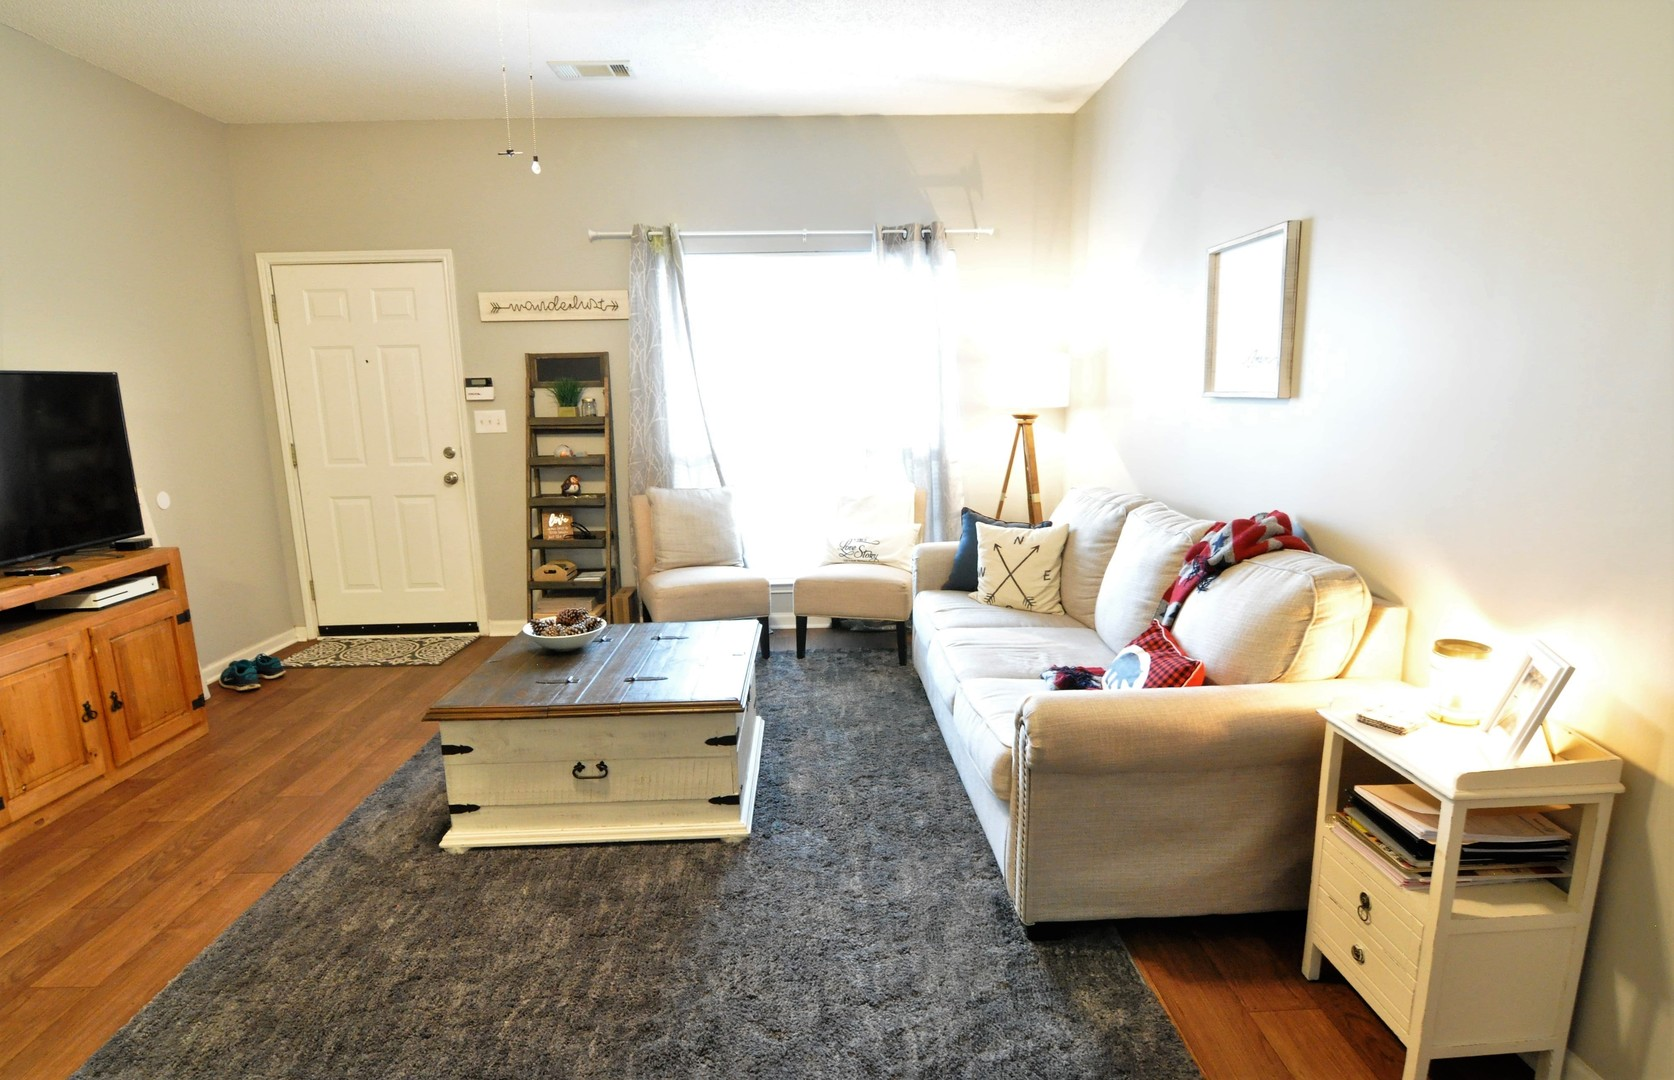 FOR RENT IN ELMORE! 1 BED 1 BATH AT 203 PINE MEADOW CIRCLE